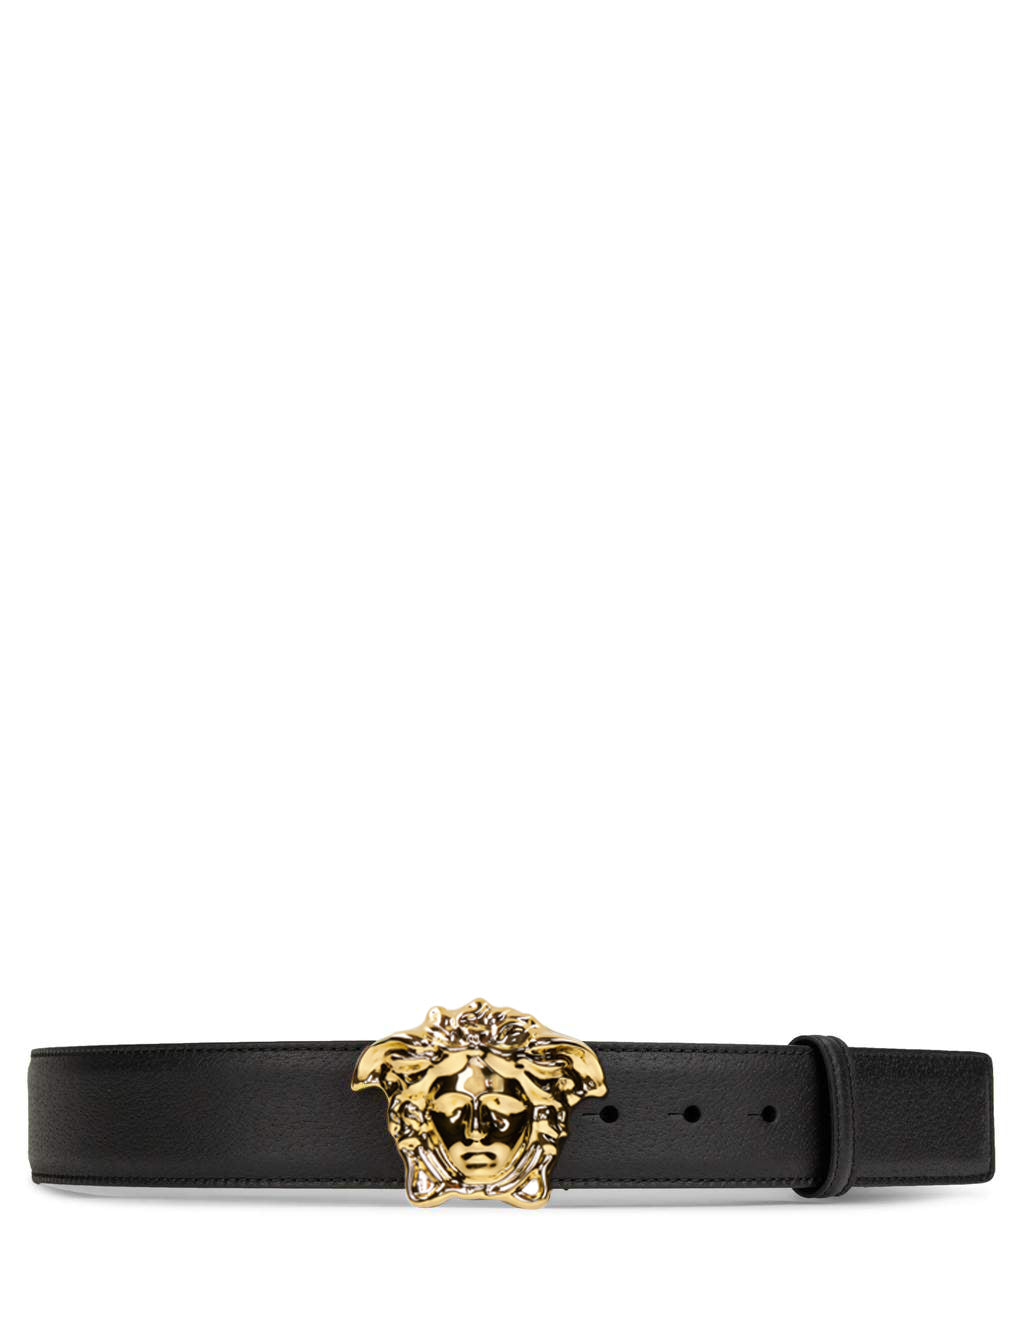 98cb816d87c Versace Men's Giulio Fashion Black Gold Medusa Buckle Palazzo Belt  DCU4140DGOV2D41OH